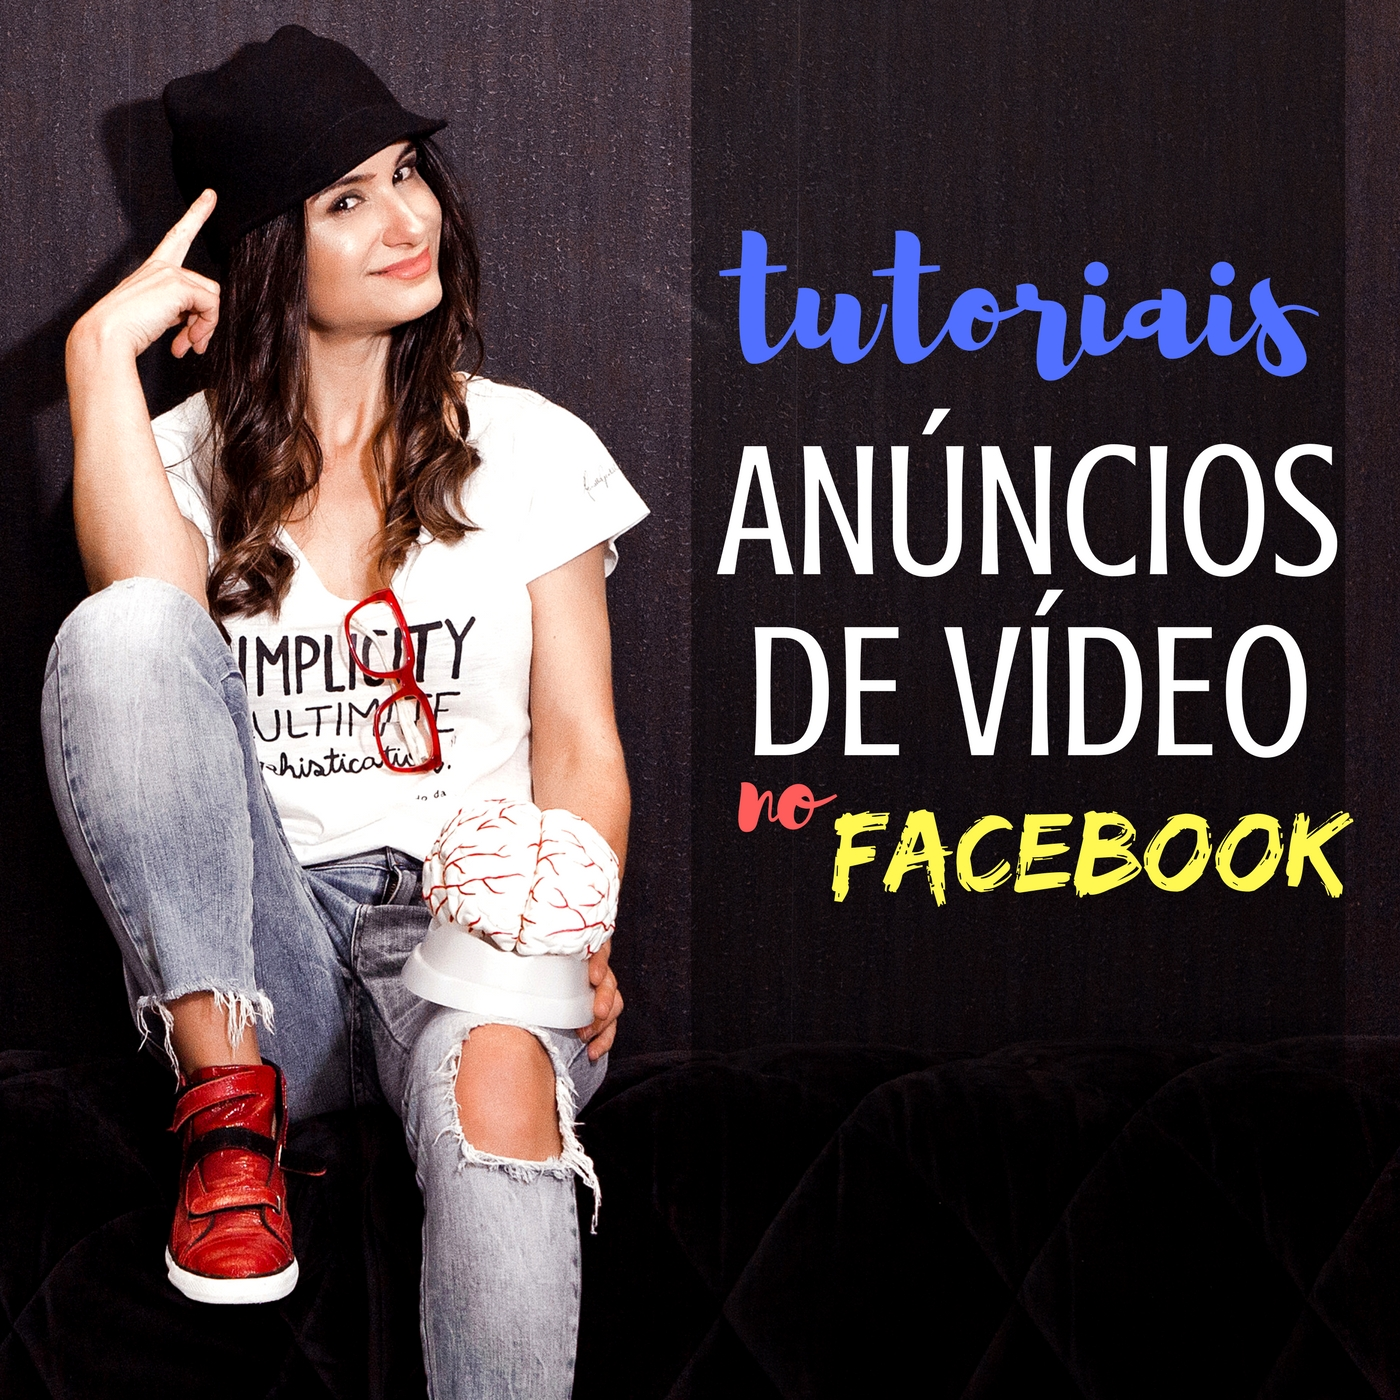 tutoriais-anuncios-de-video-facebook-like-marketing